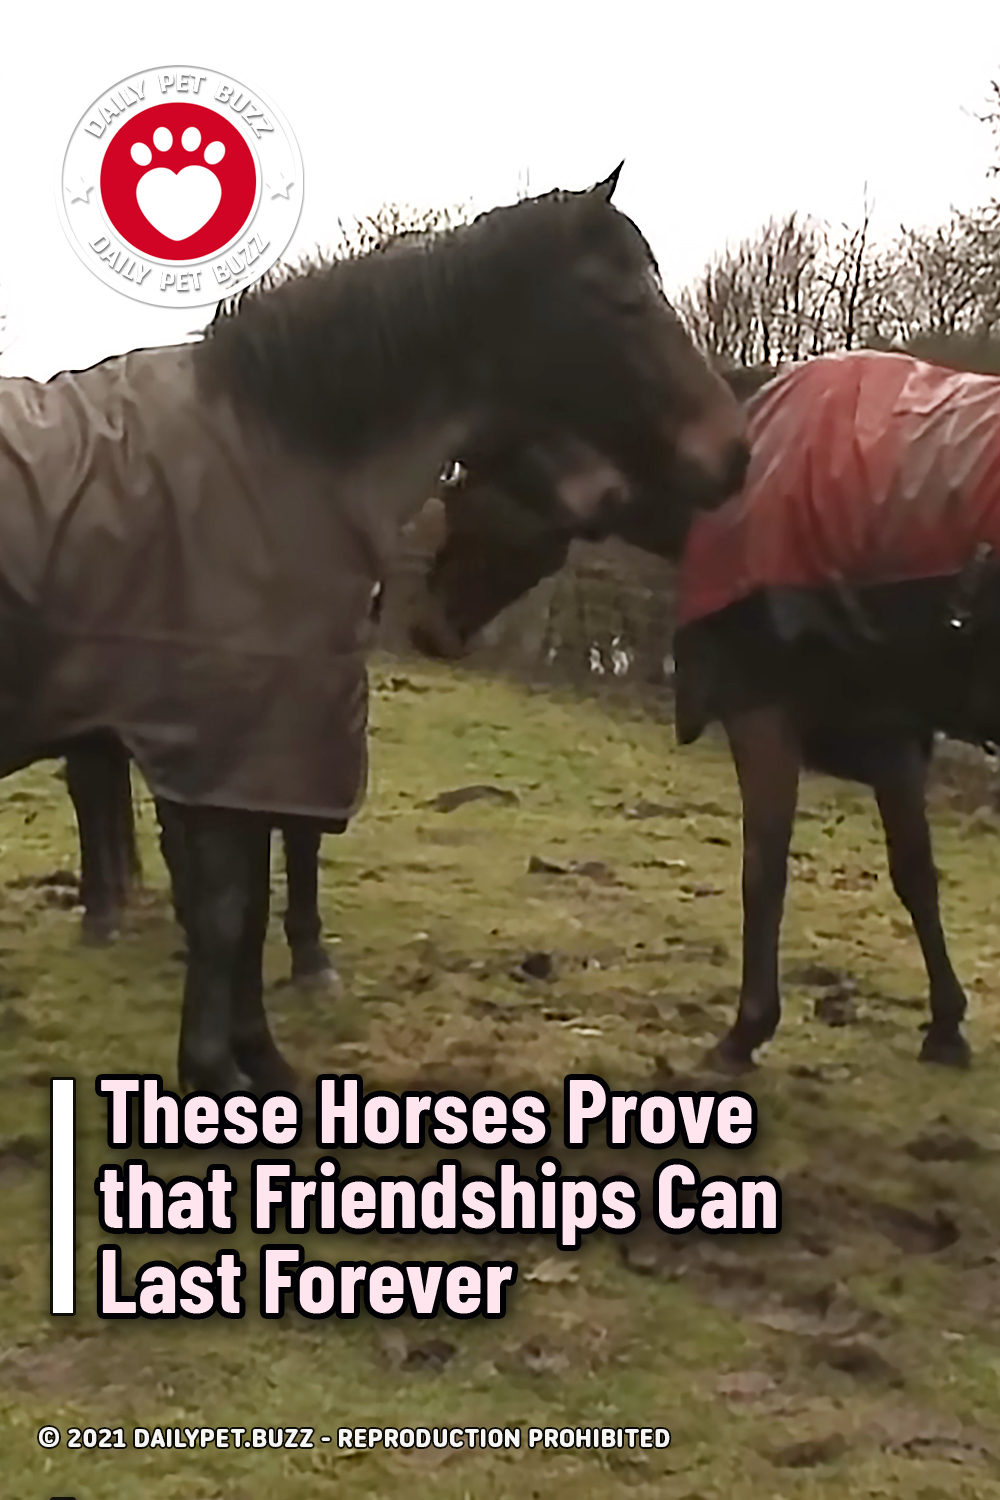 These Horses Prove that Friendships Can Last Forever